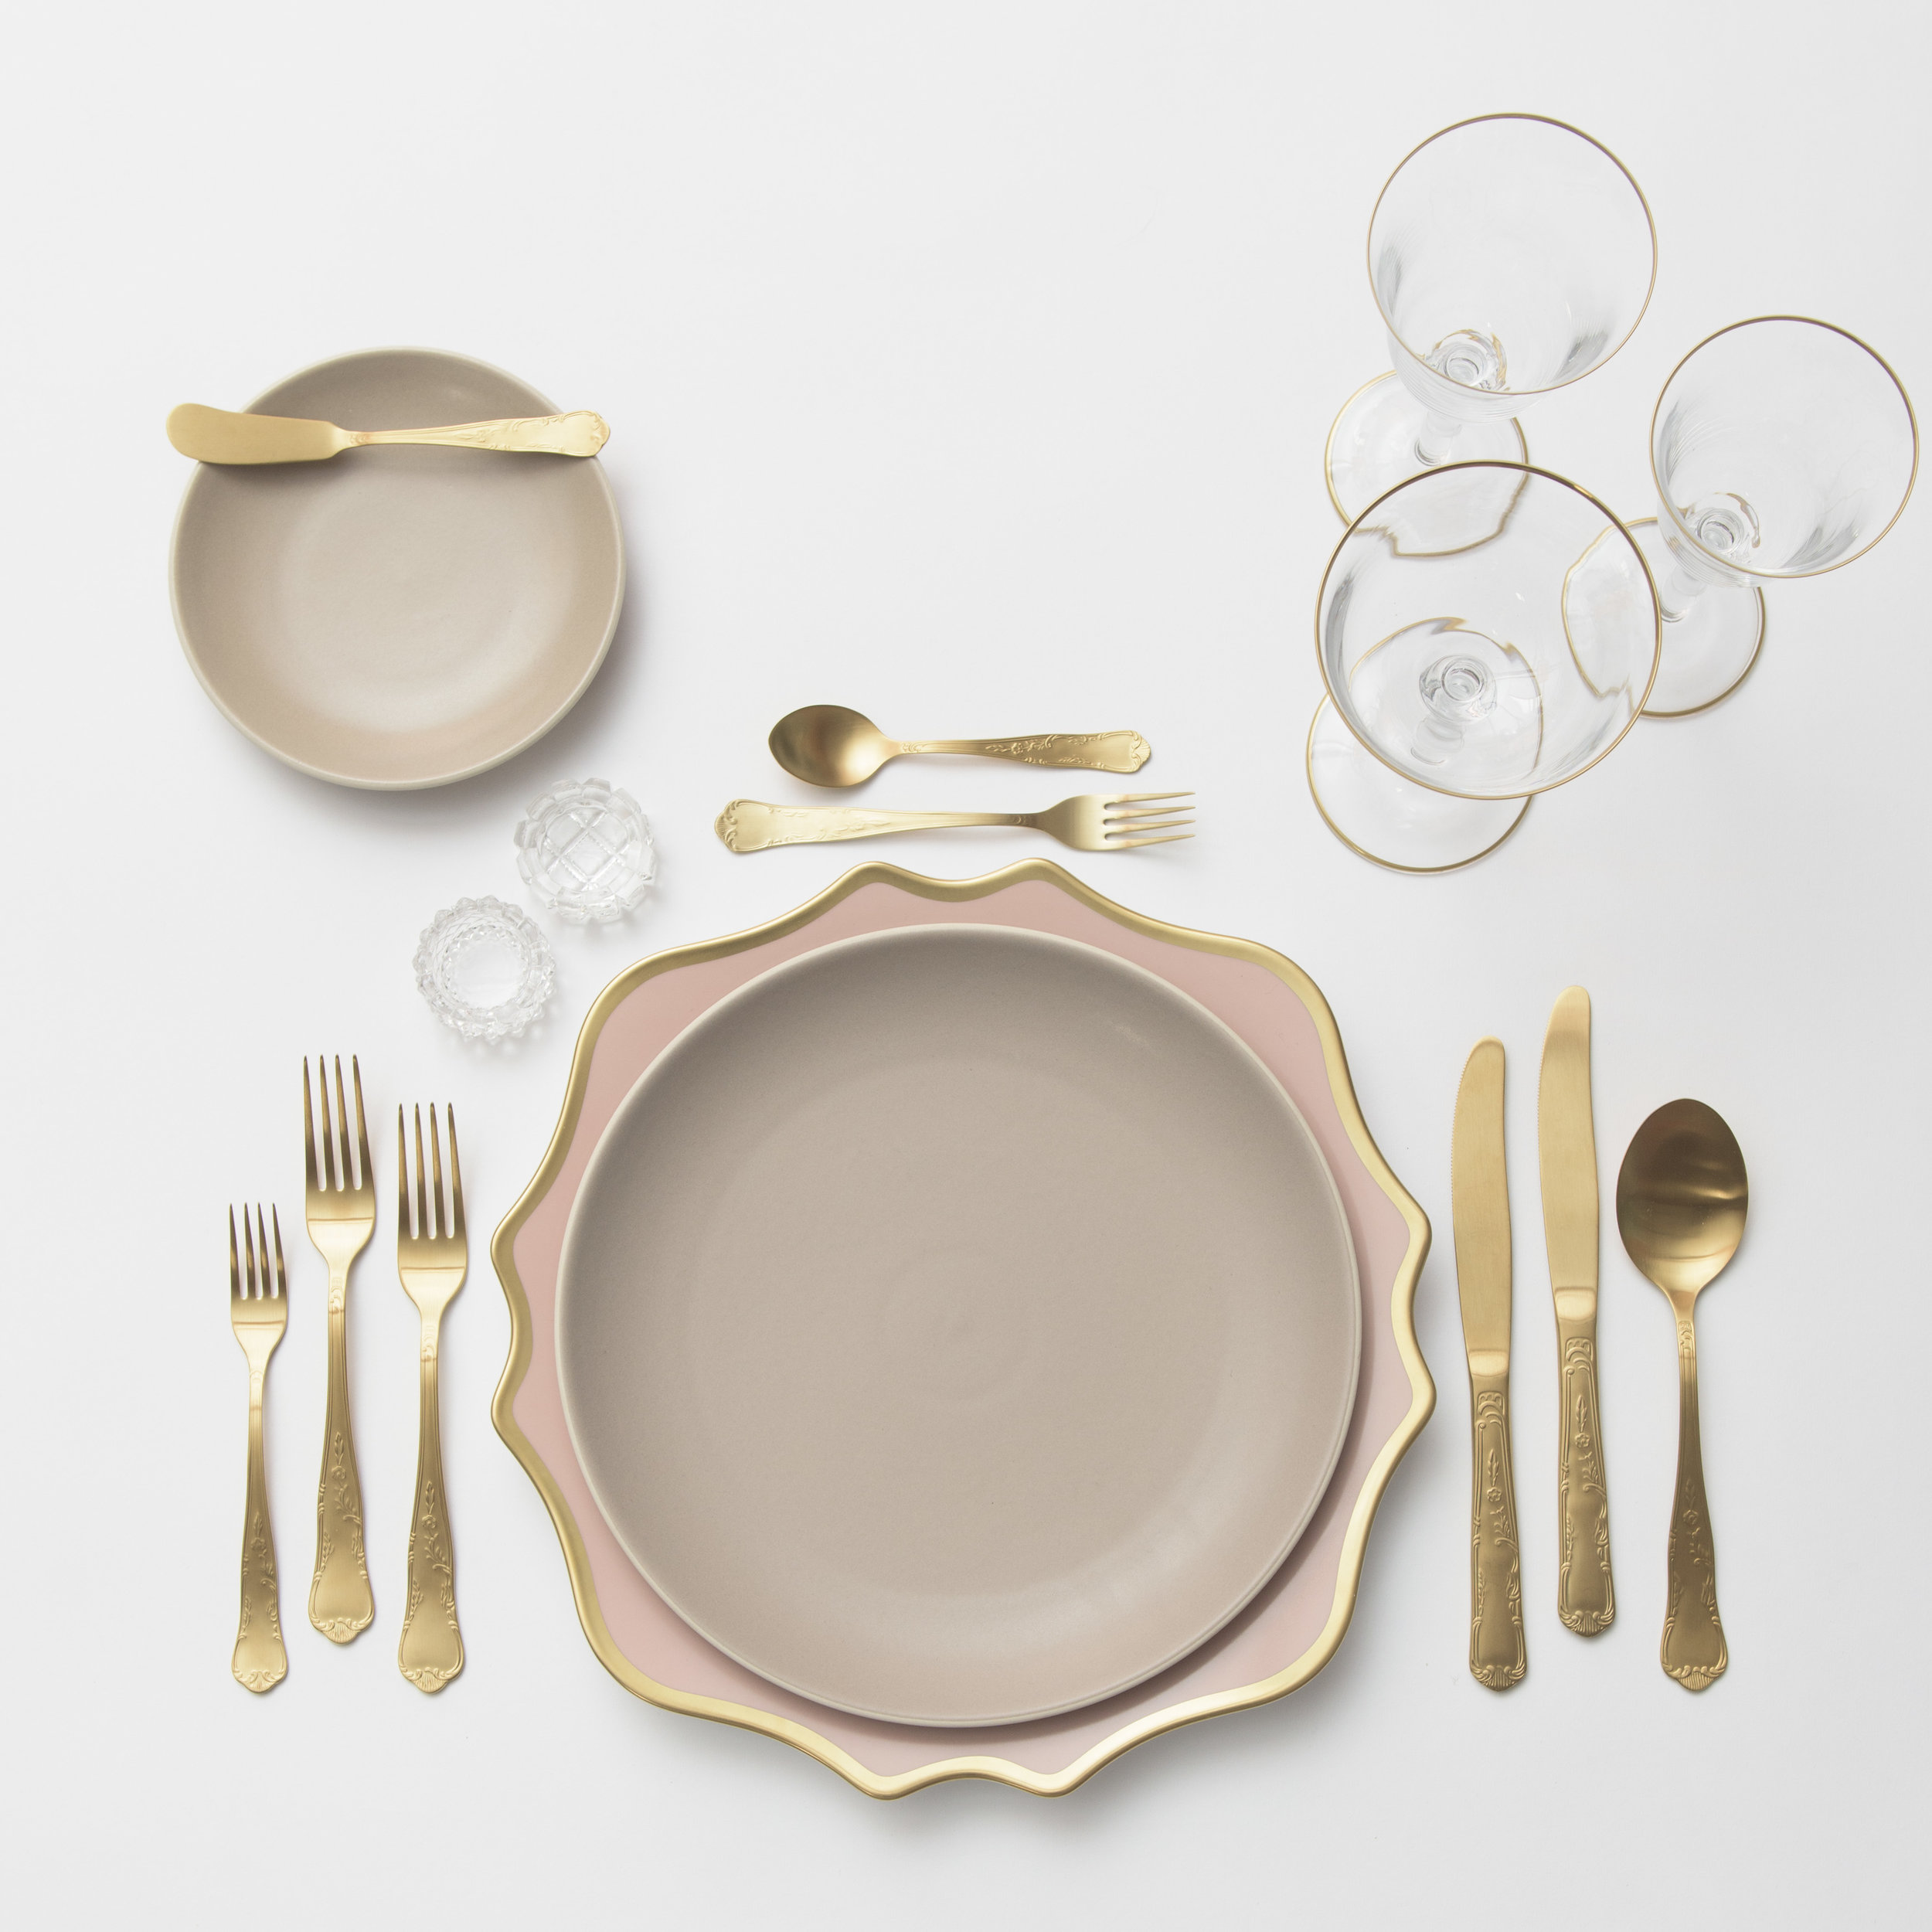 RENT: Anna Weatherley Chargers in Desert Rose/Gold + Heath Ceramics in French Grey + Chateau Flatware in Matte Gold + Chloe 24k Gold Rimmed Stemware + Antique Crystal Salt Cellars   SHOP: Chloe 24k Gold Rimmed Stemware